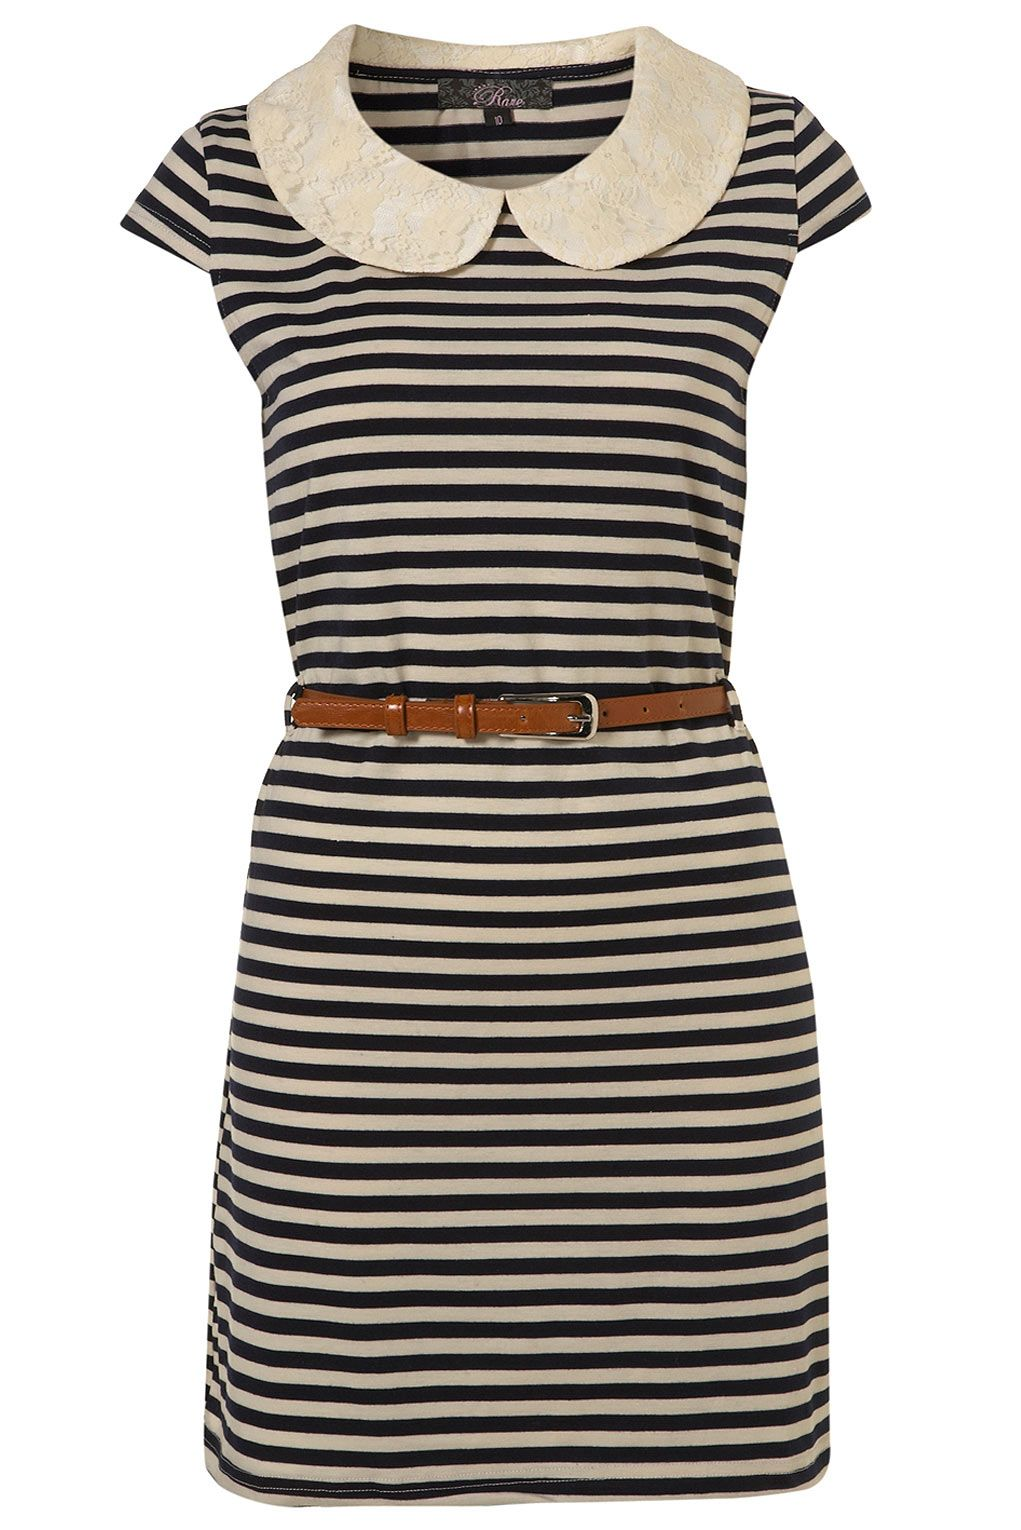 Topshop navy blue striped shift dress with lace Peter Pan ...